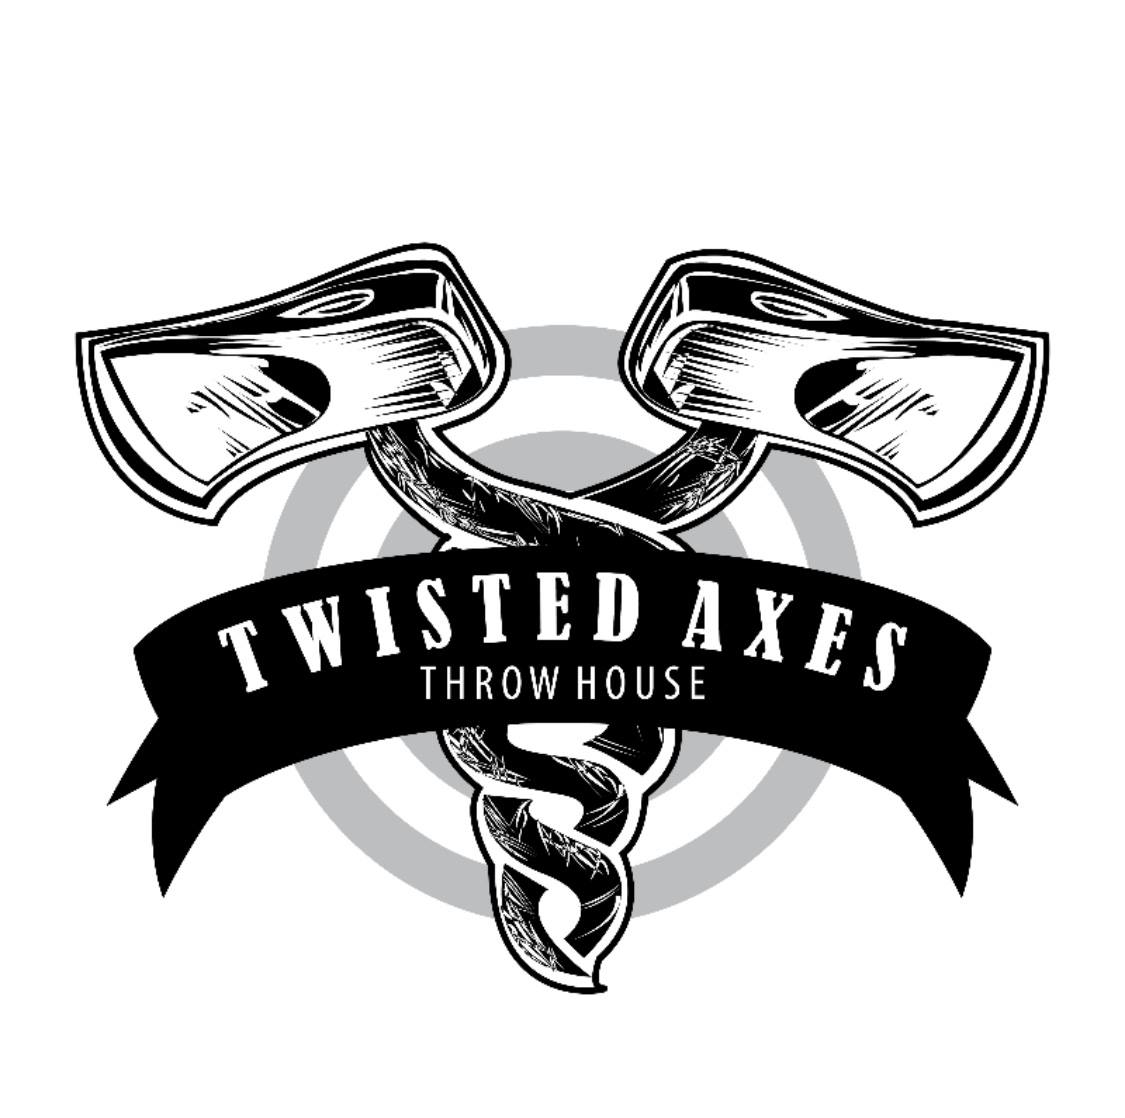 Twisted Axes Throw House is the Most Affordable Axe Throwing Venue in Oklahoma City, OK